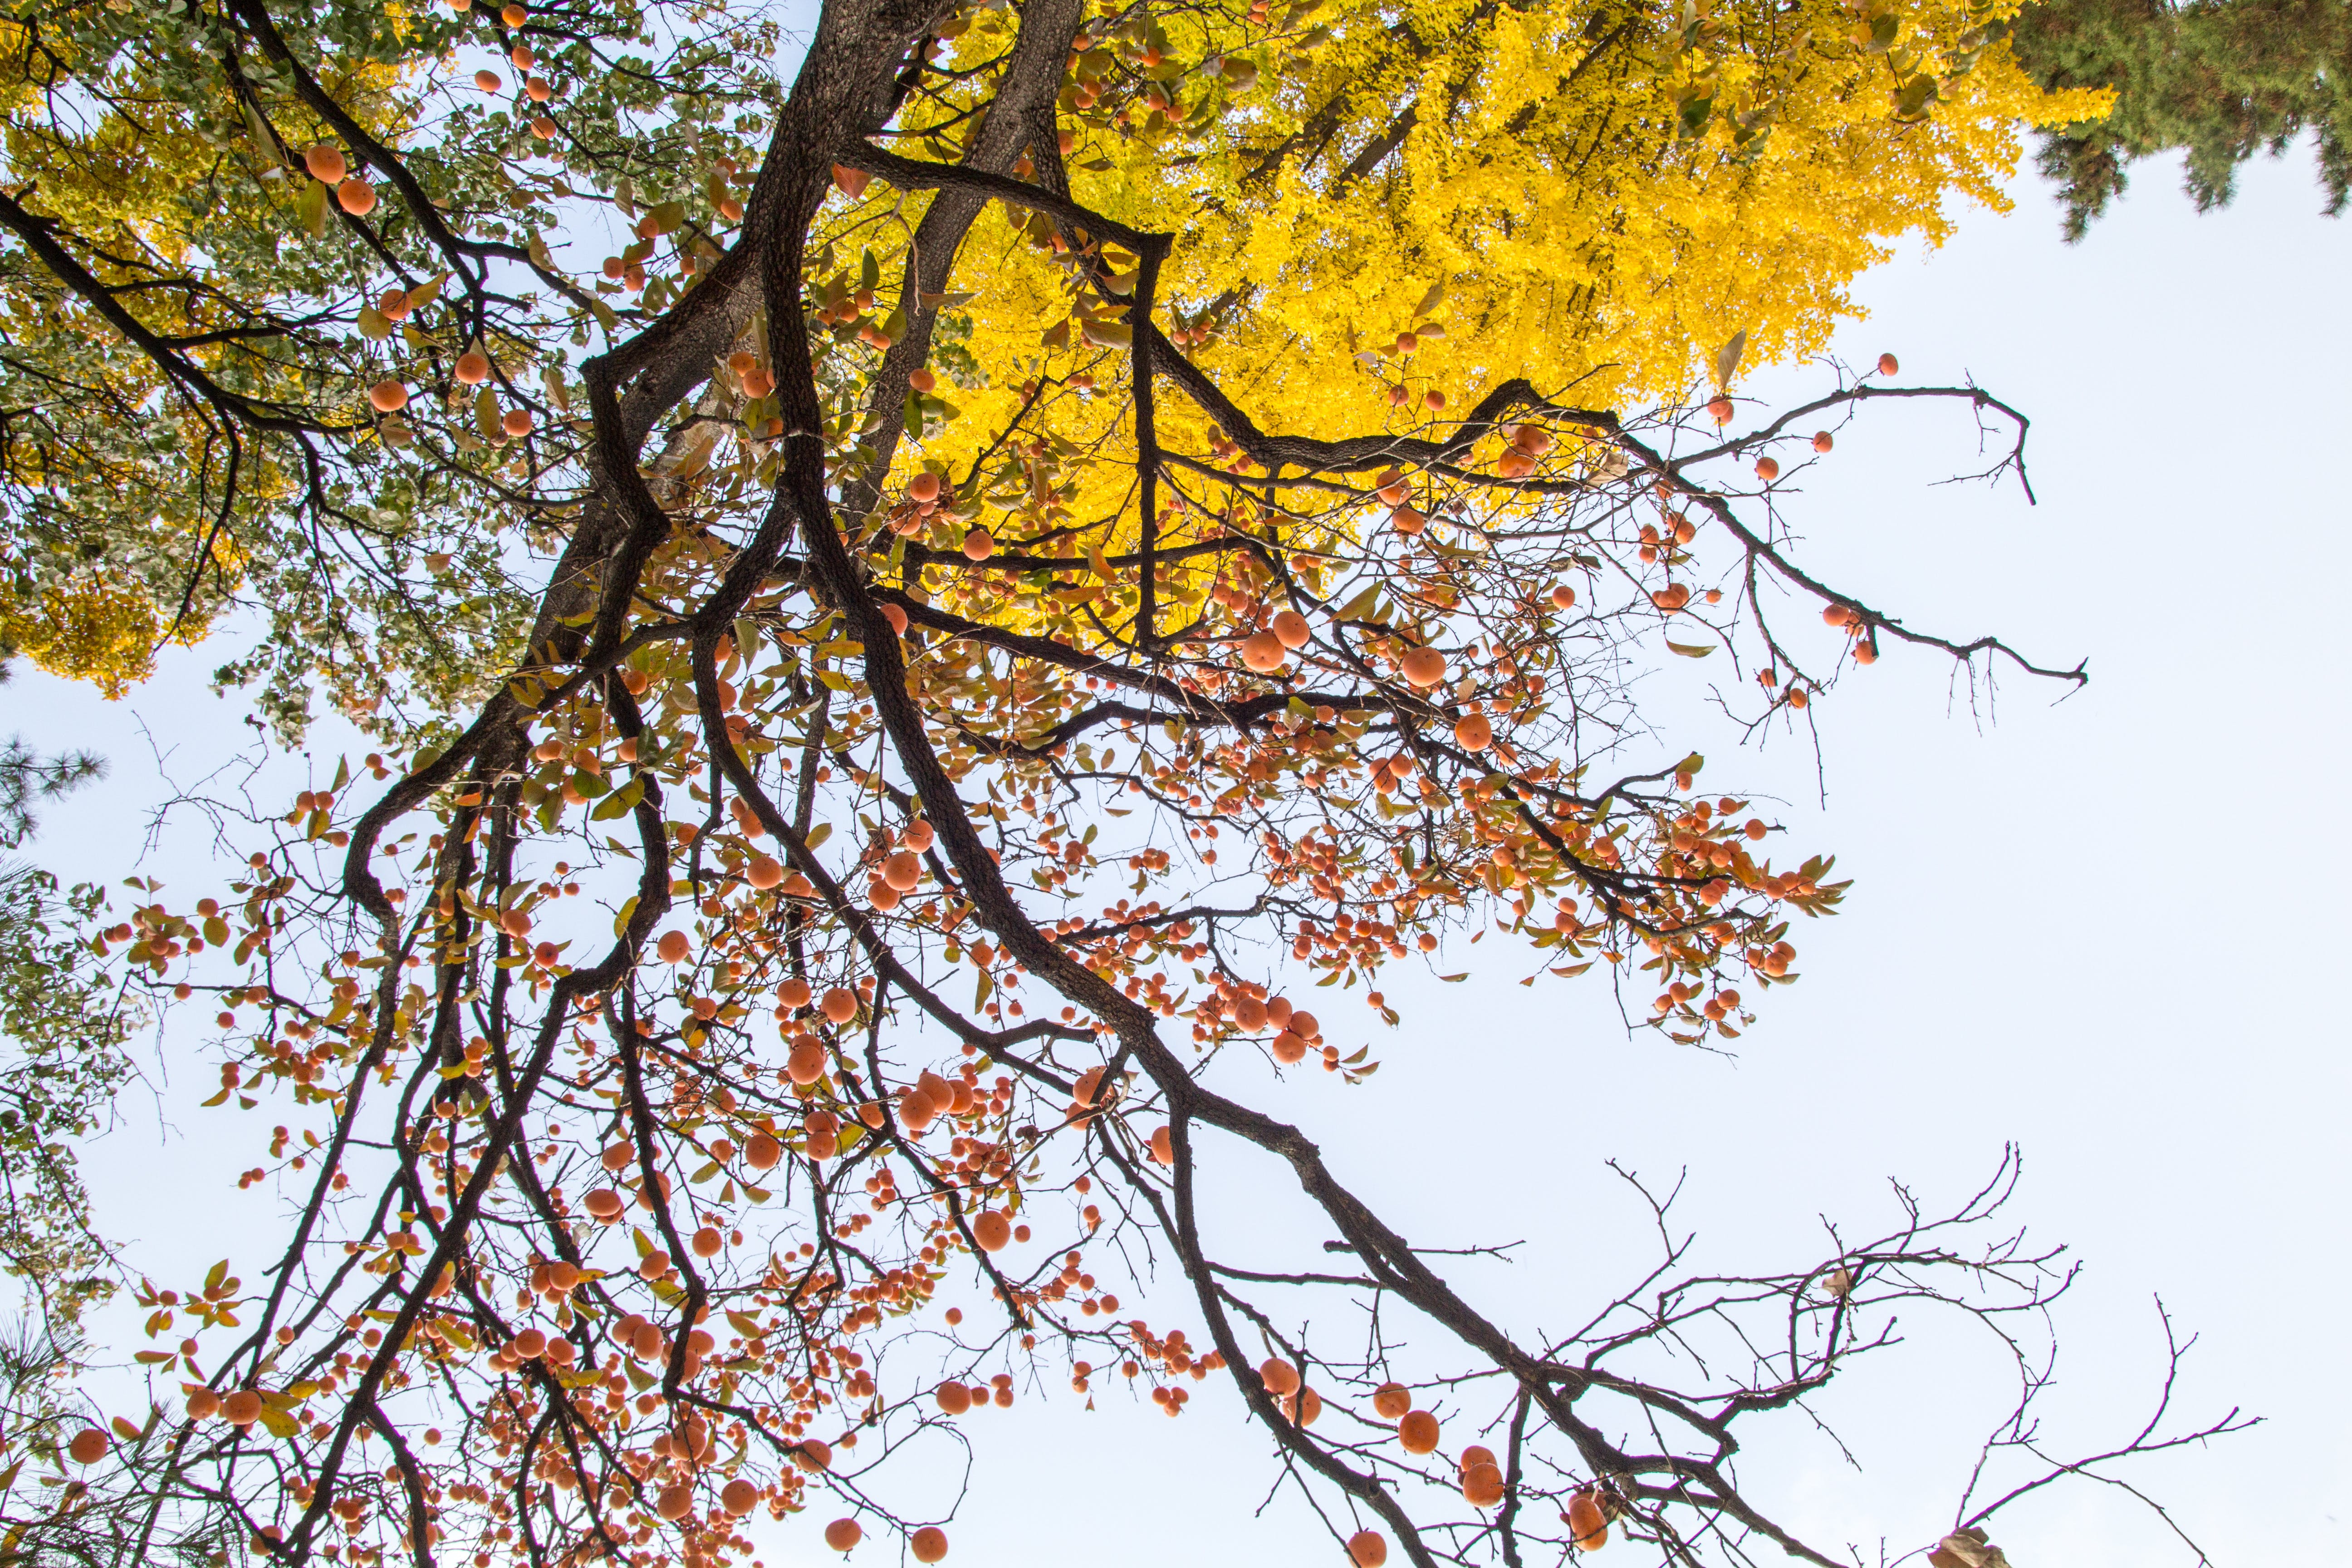 Brown and Yellow Leafed Trees